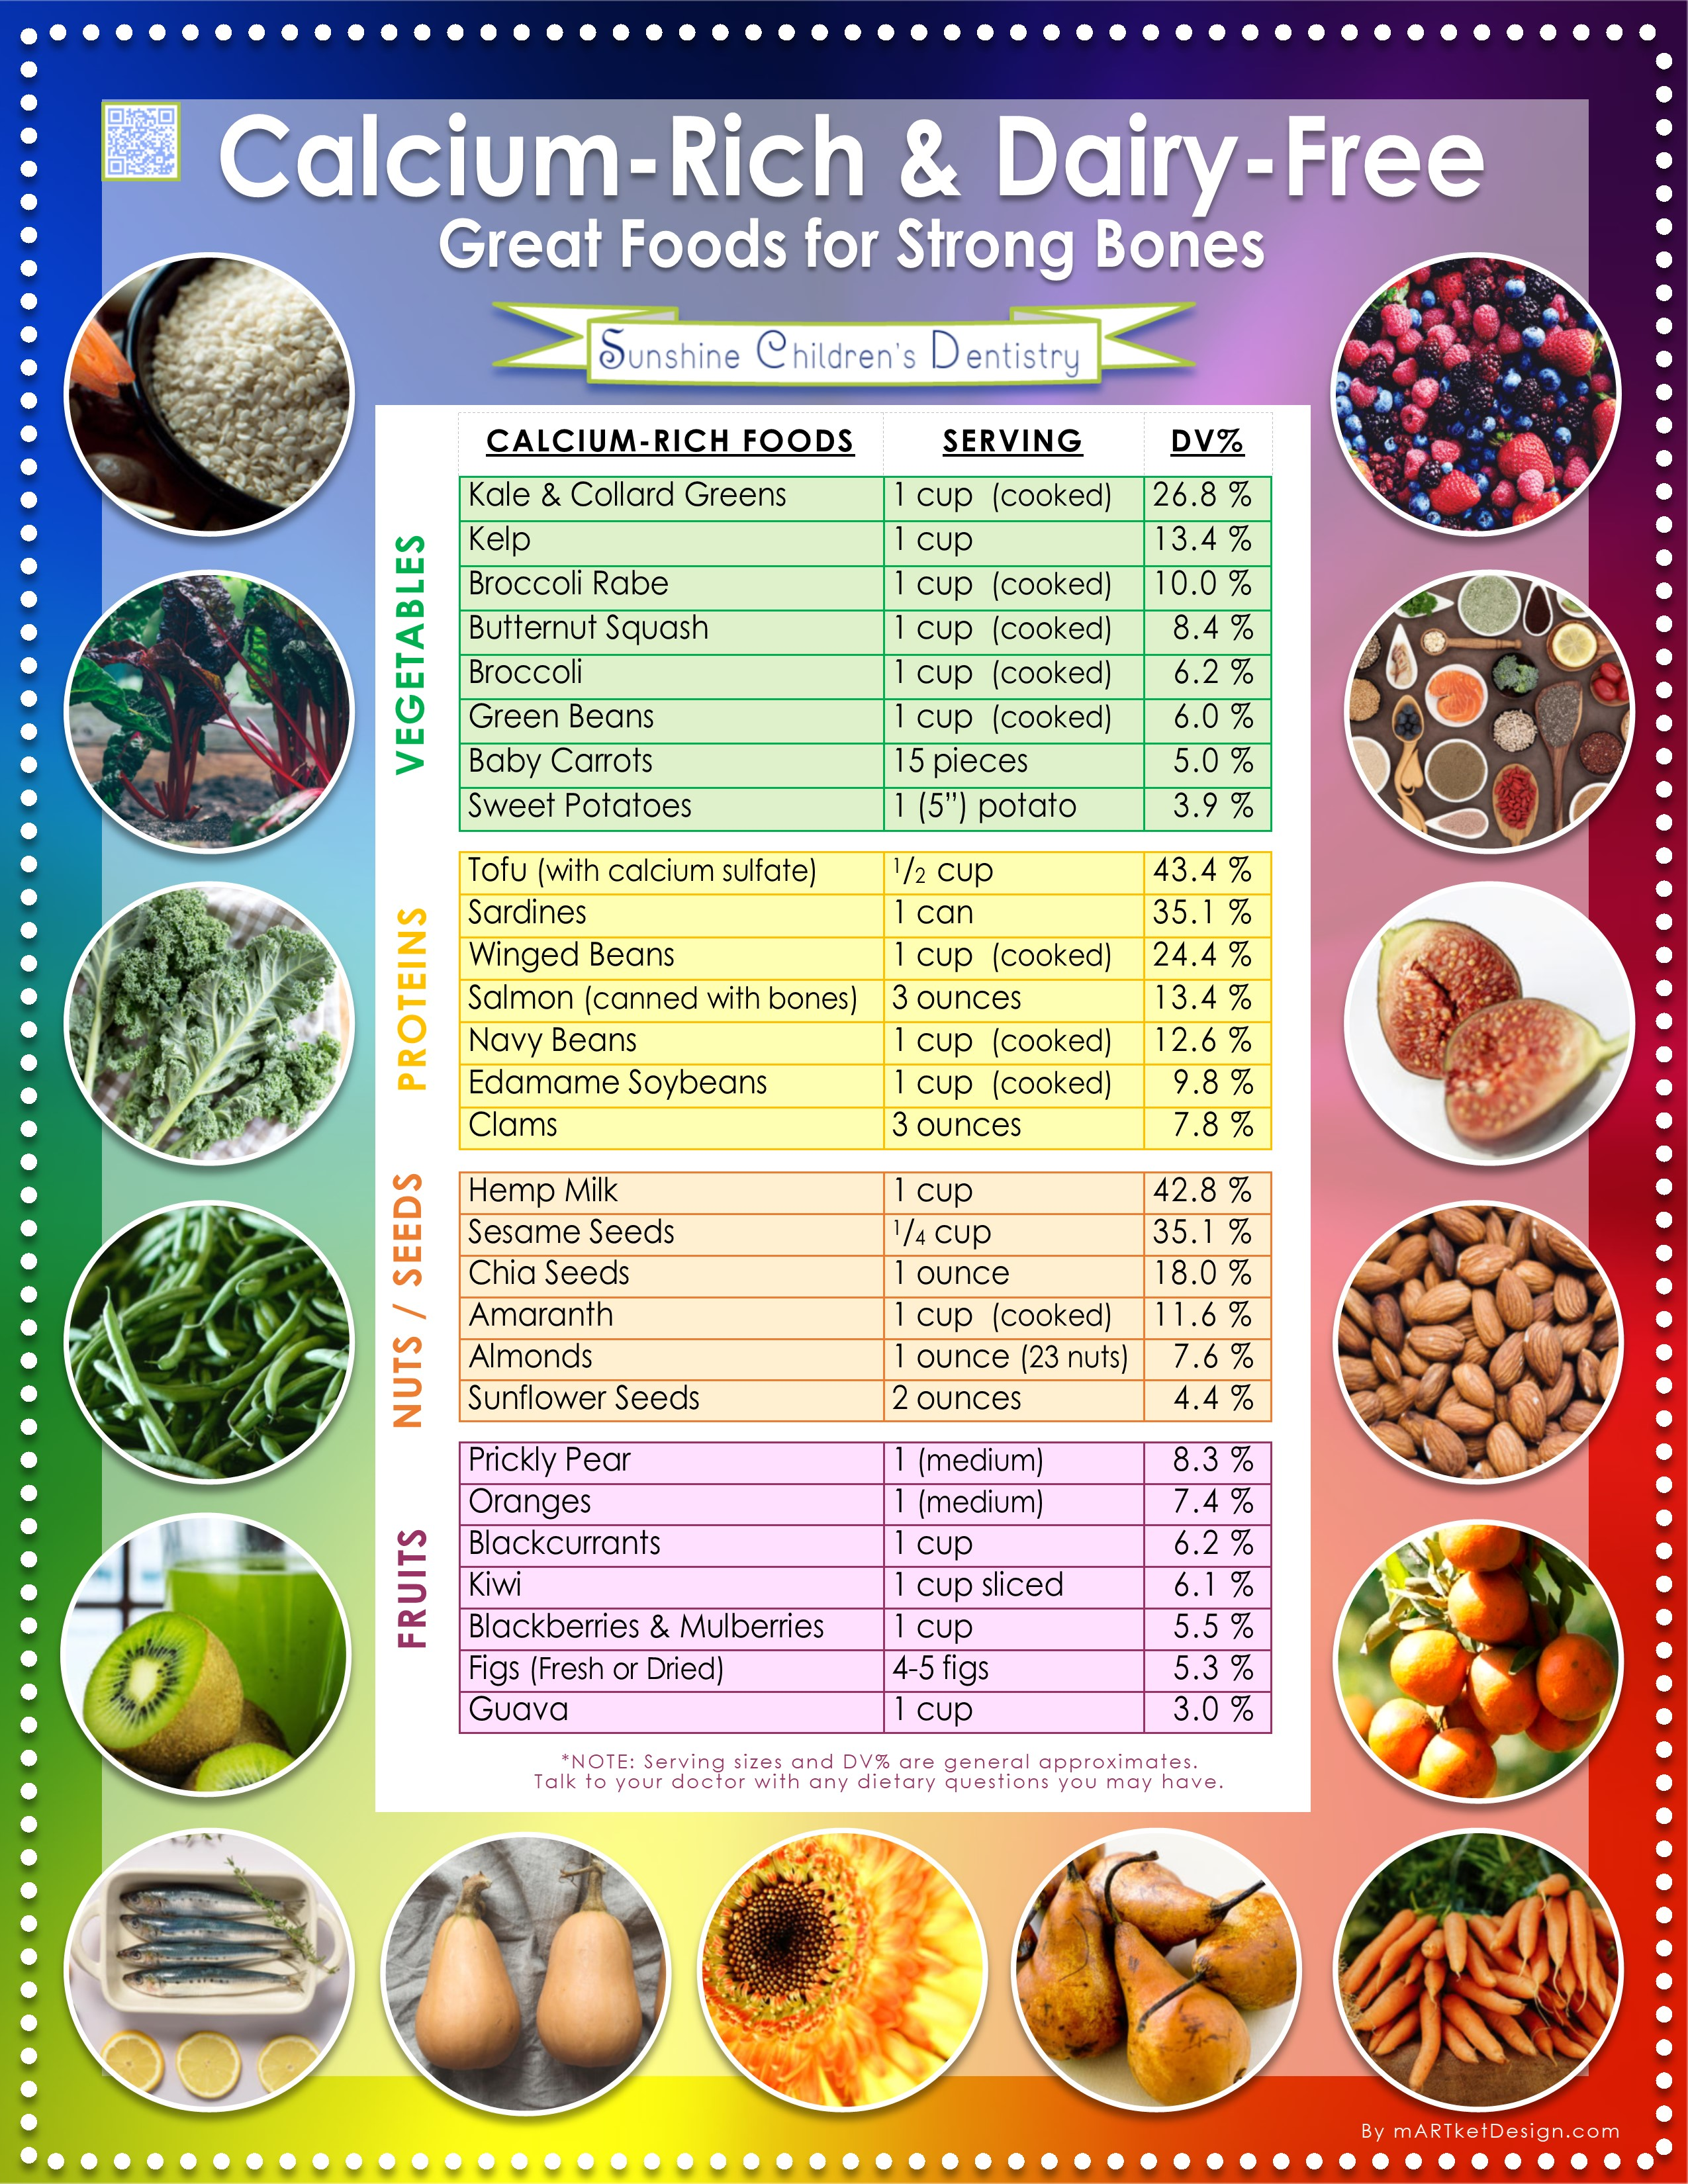 Calcium Rich Dairy Free Great Foods For Strong Bones